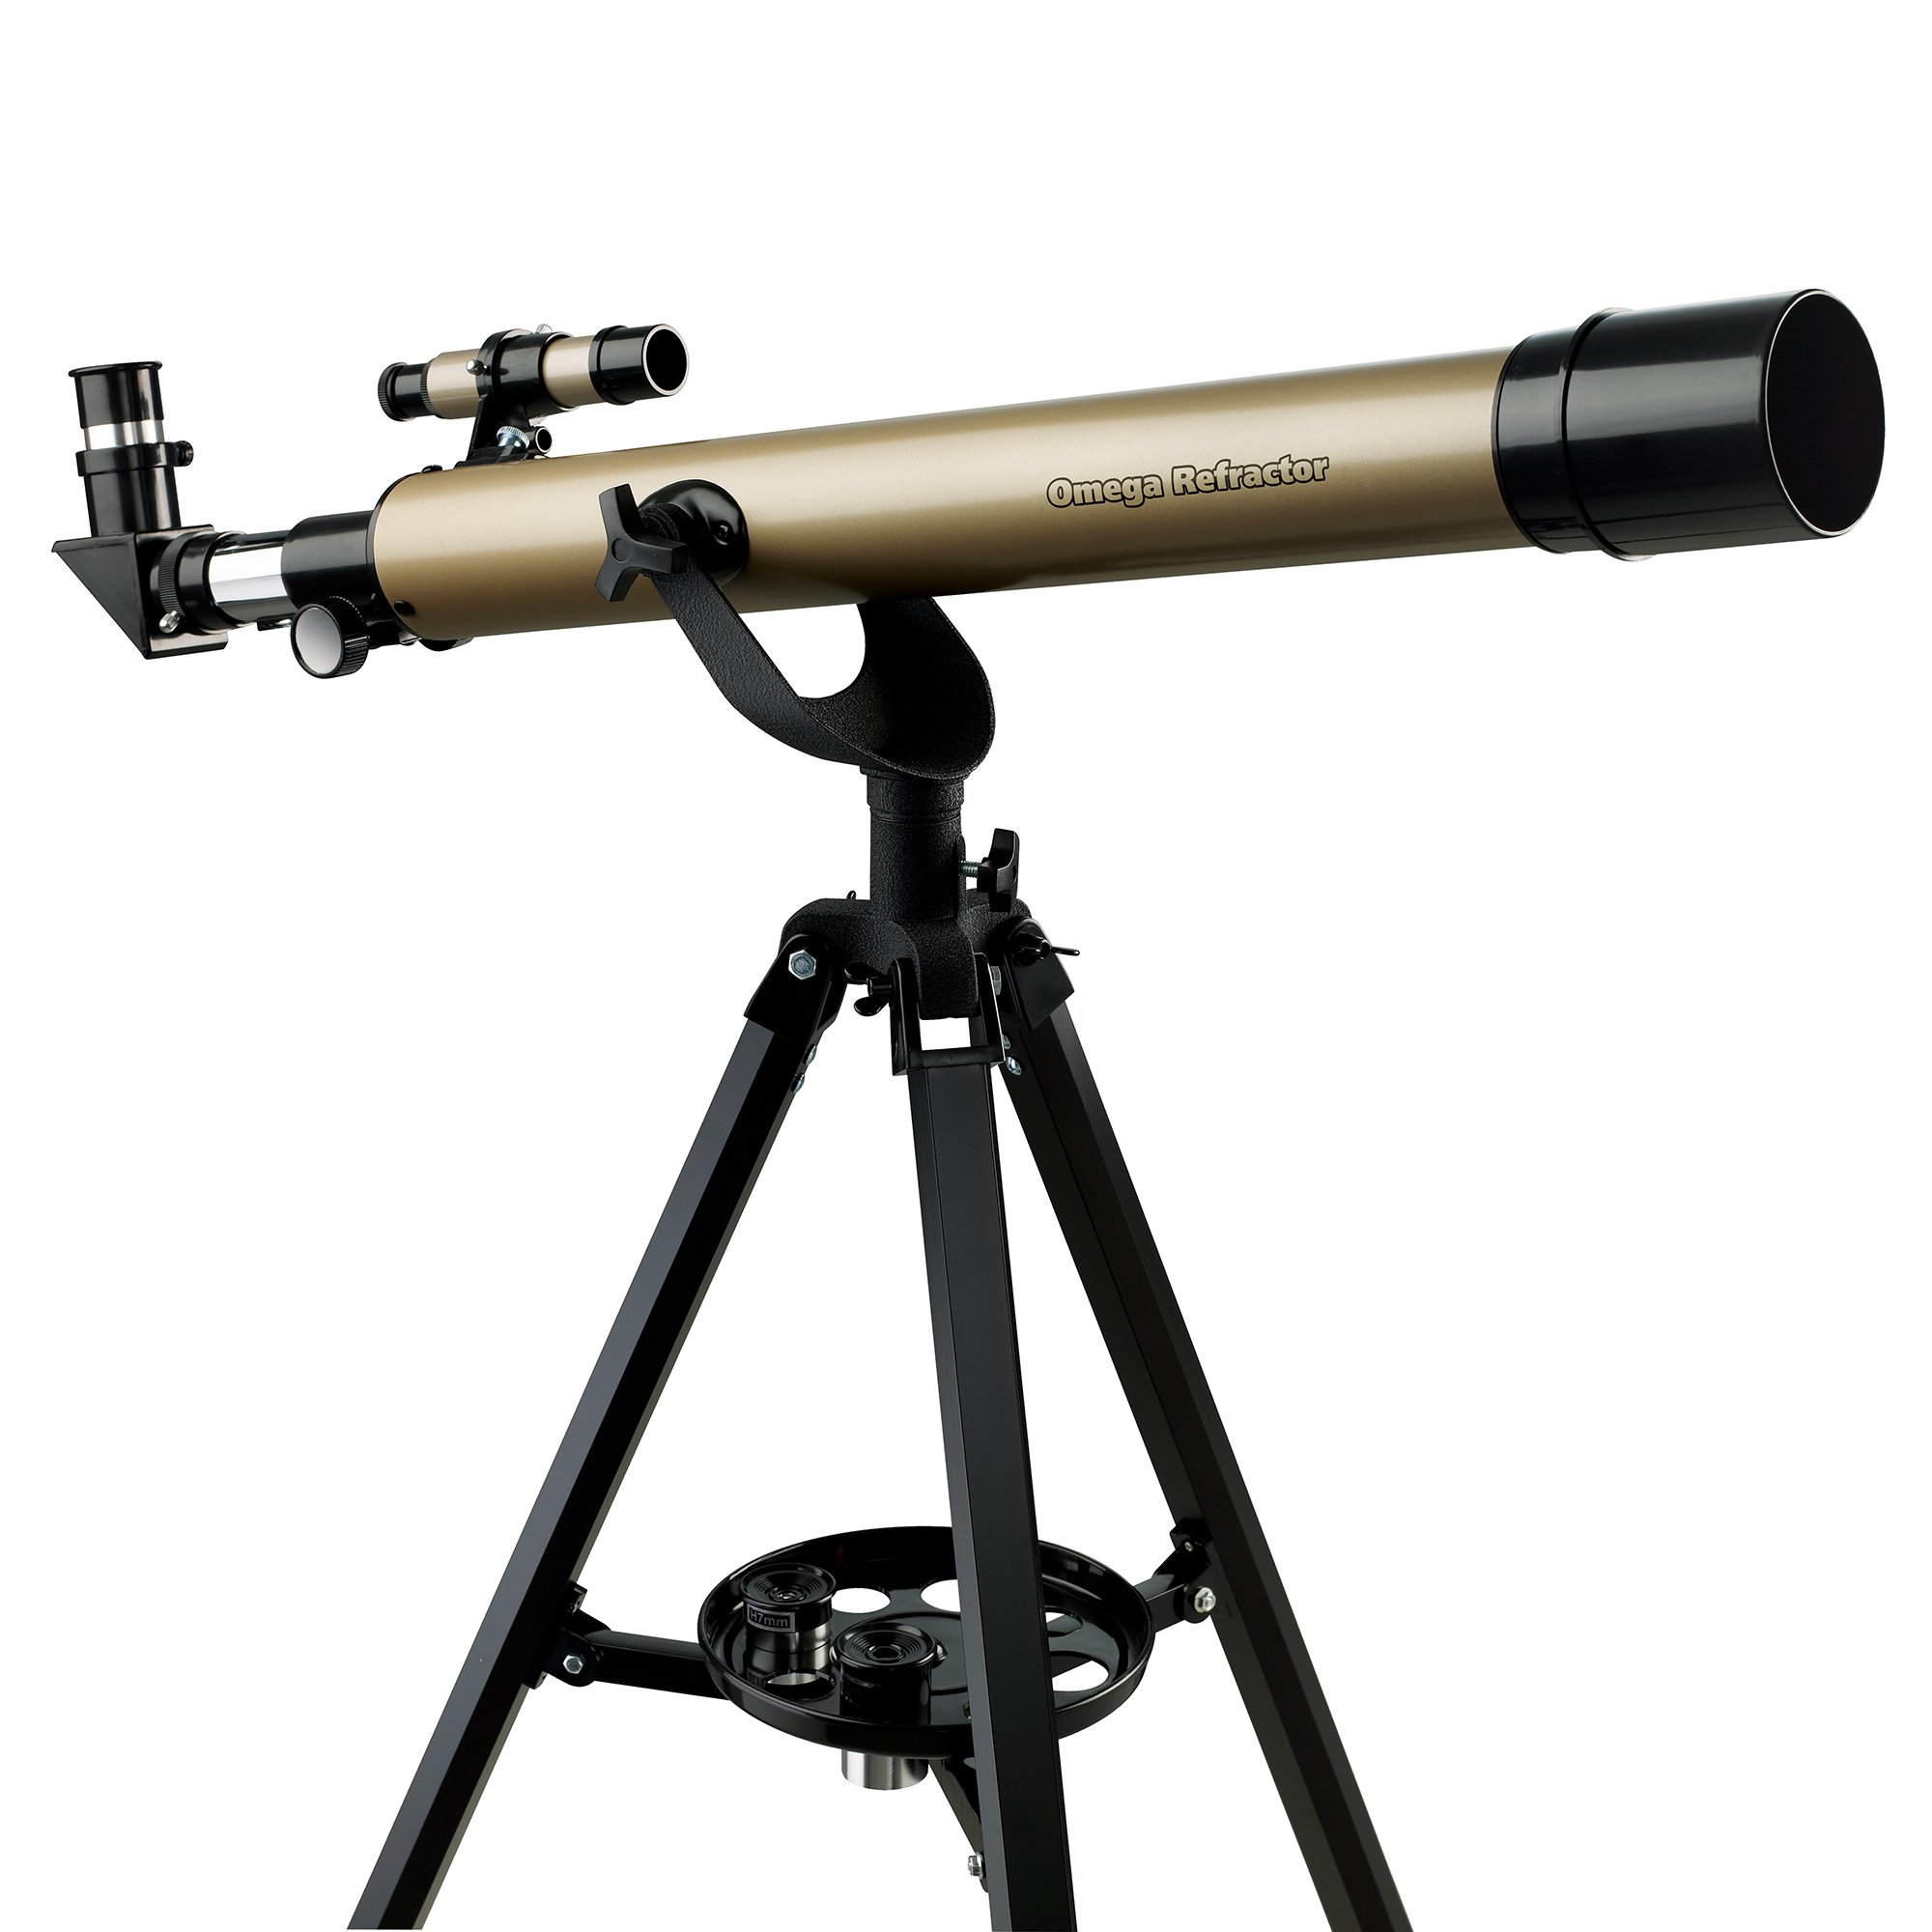 Educational Insights GeoSafari Omega Refractor Telescope, Supports STEM Learning, Ages 6 and Up by Educational Insights